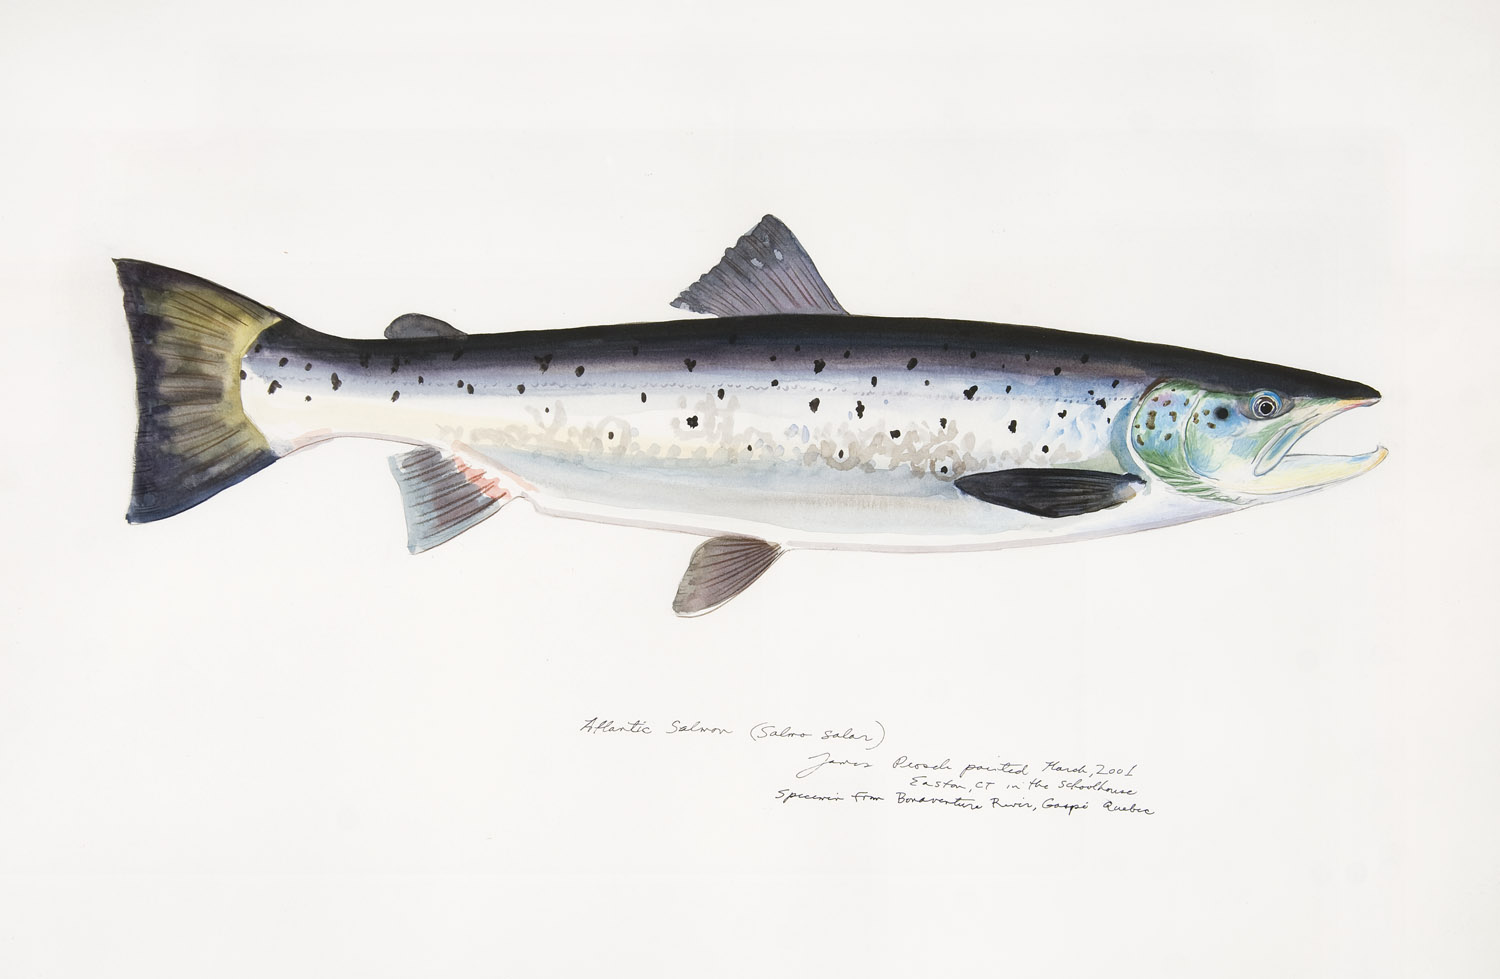 James Prosek Atlantic Salmon James Prosek: The Audubon of Fish